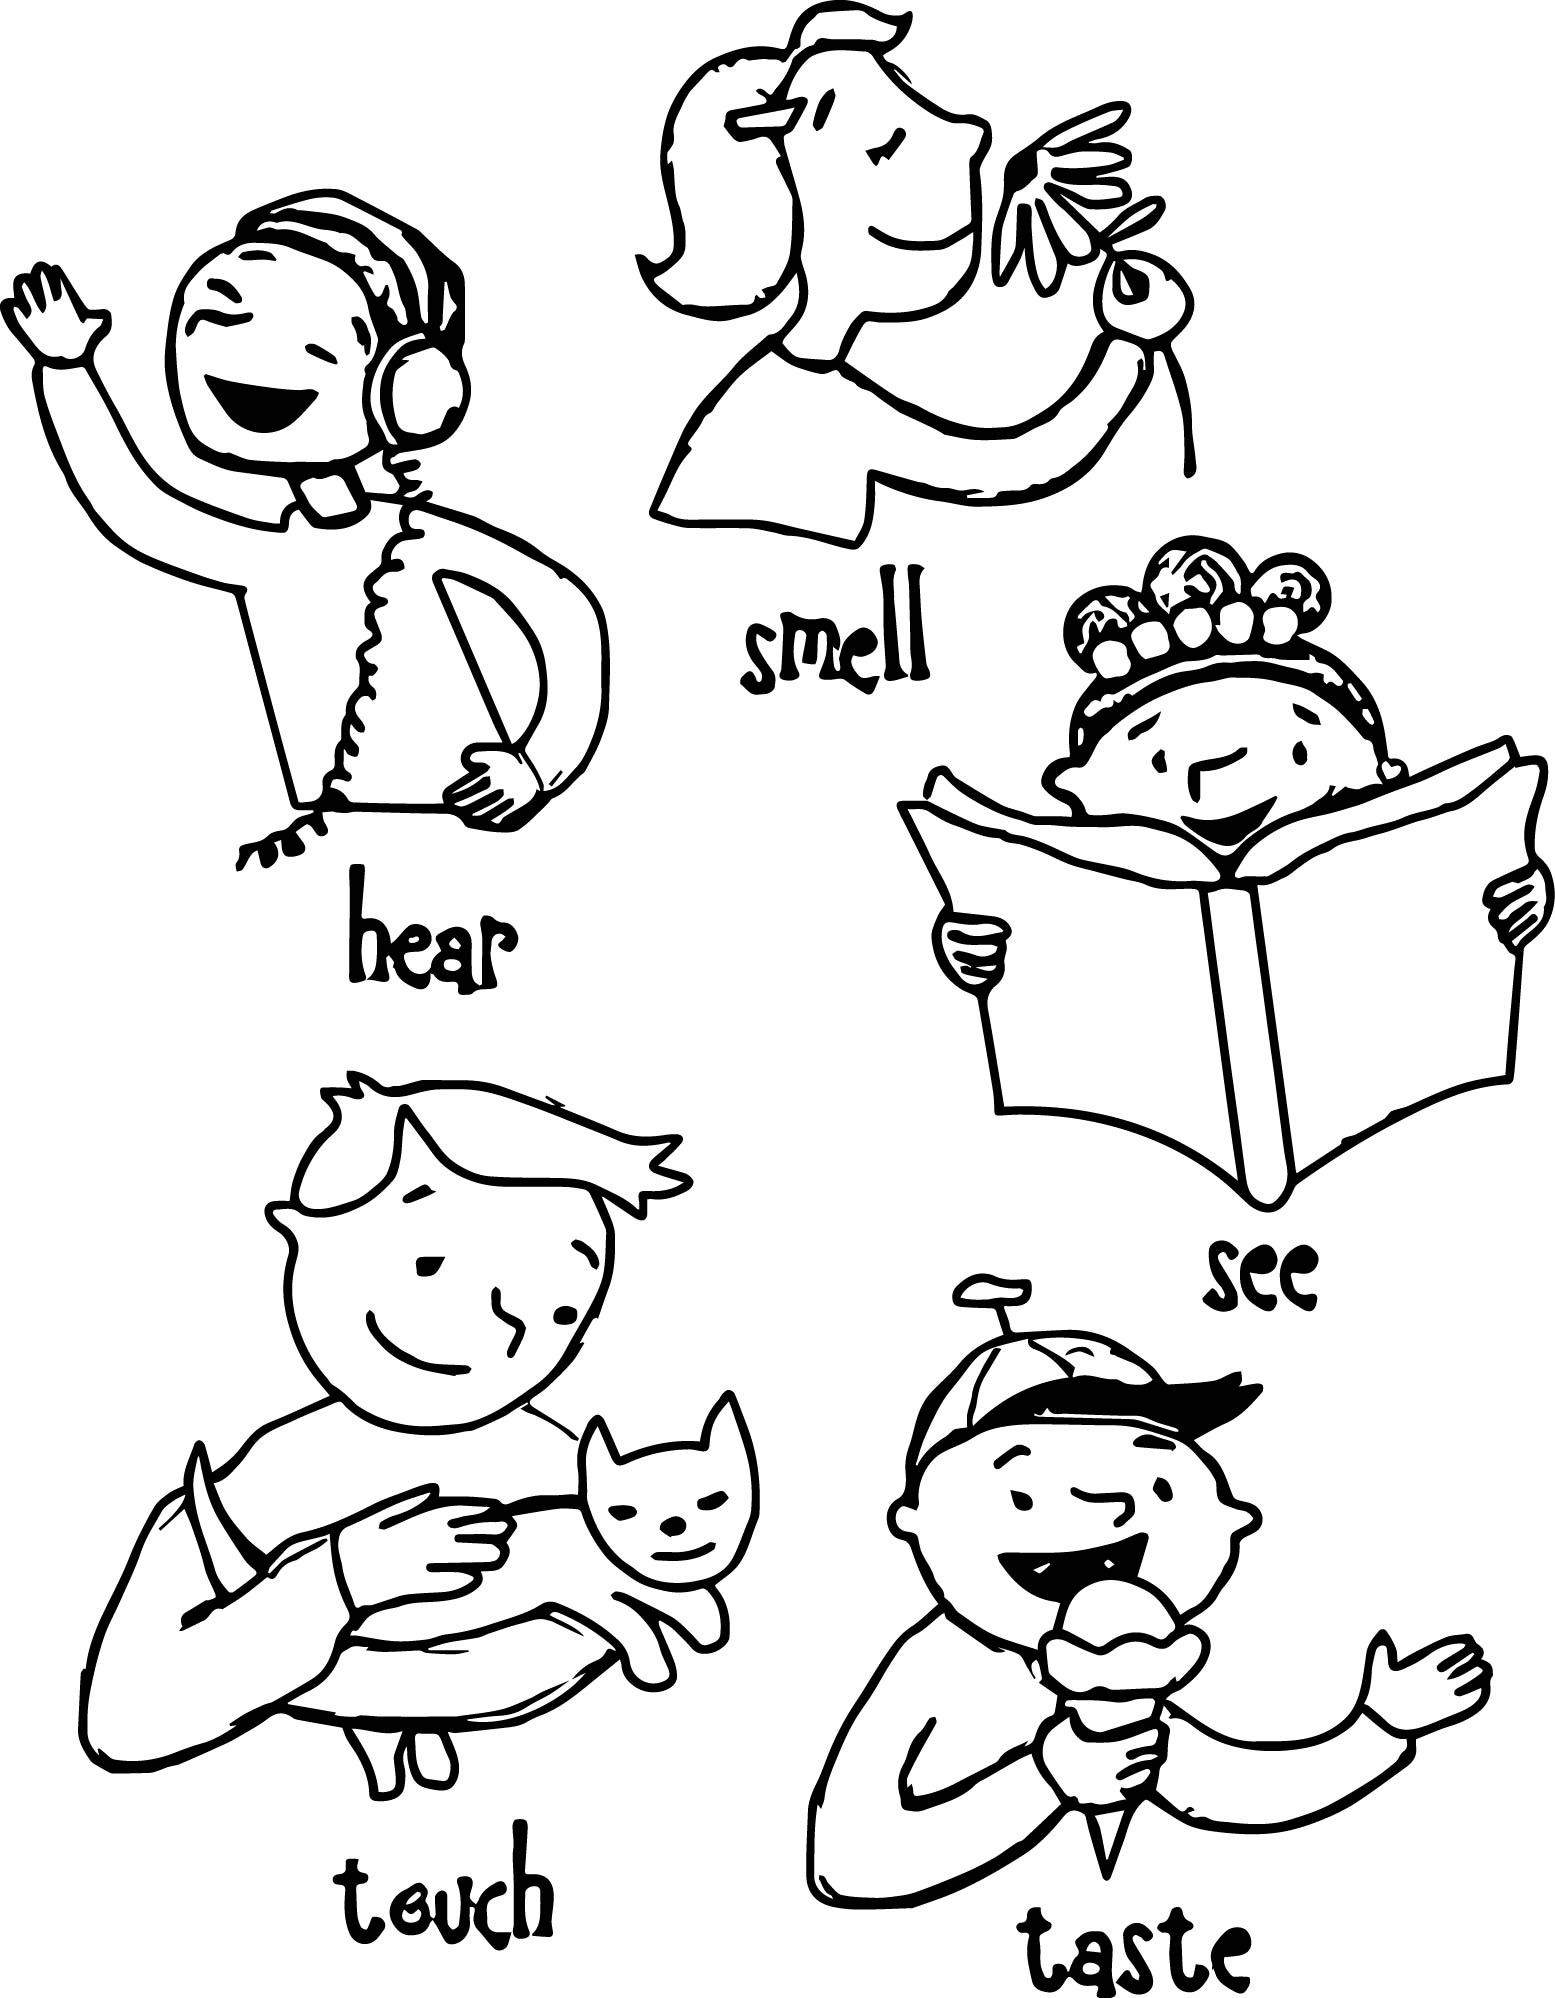 Children 5 Senses Coloring Page Preschool Coloring Pages Senses Preschool My Five Senses